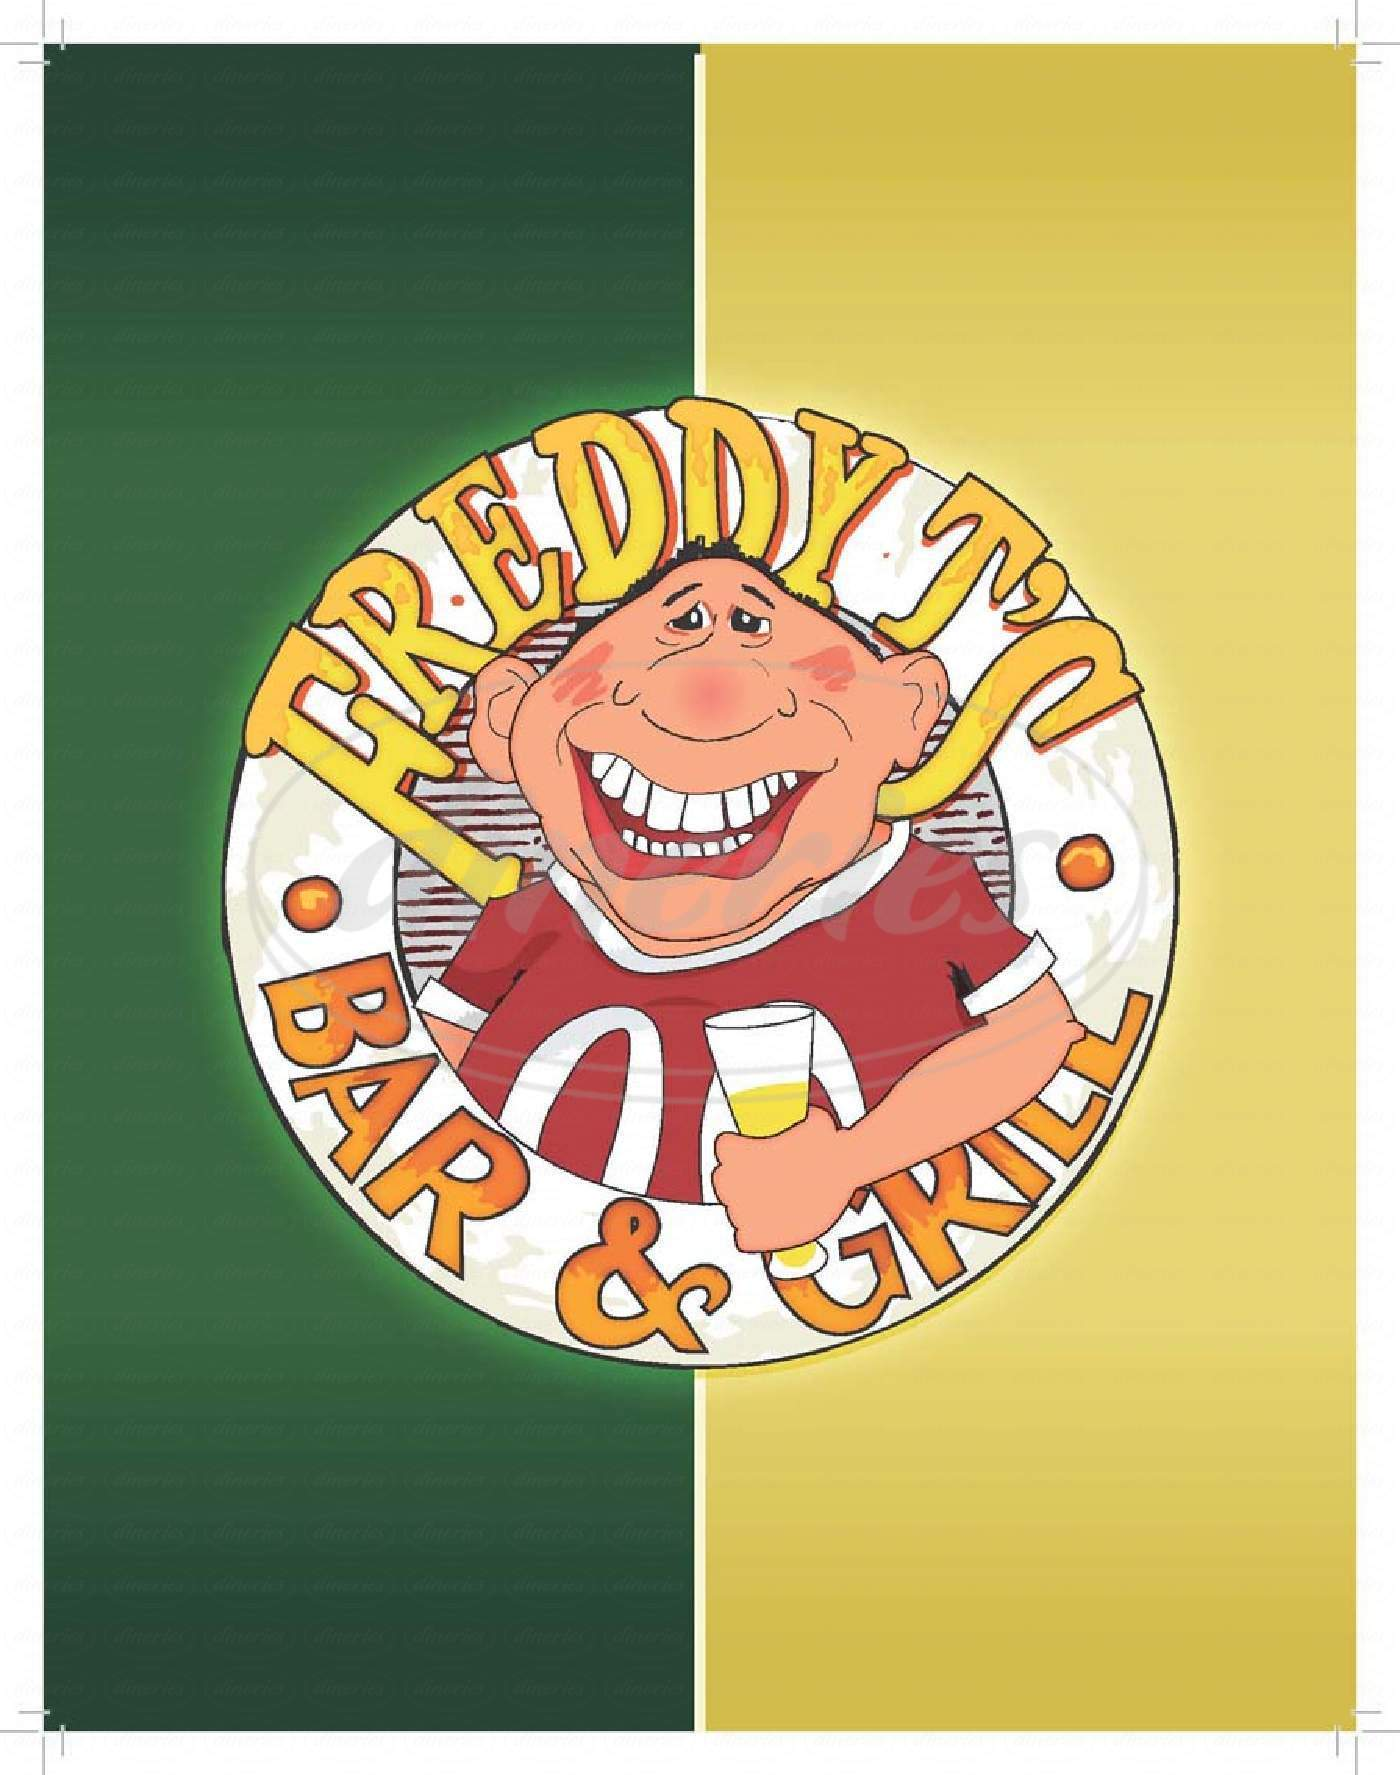 menu for Freddy T's Bar & Grill